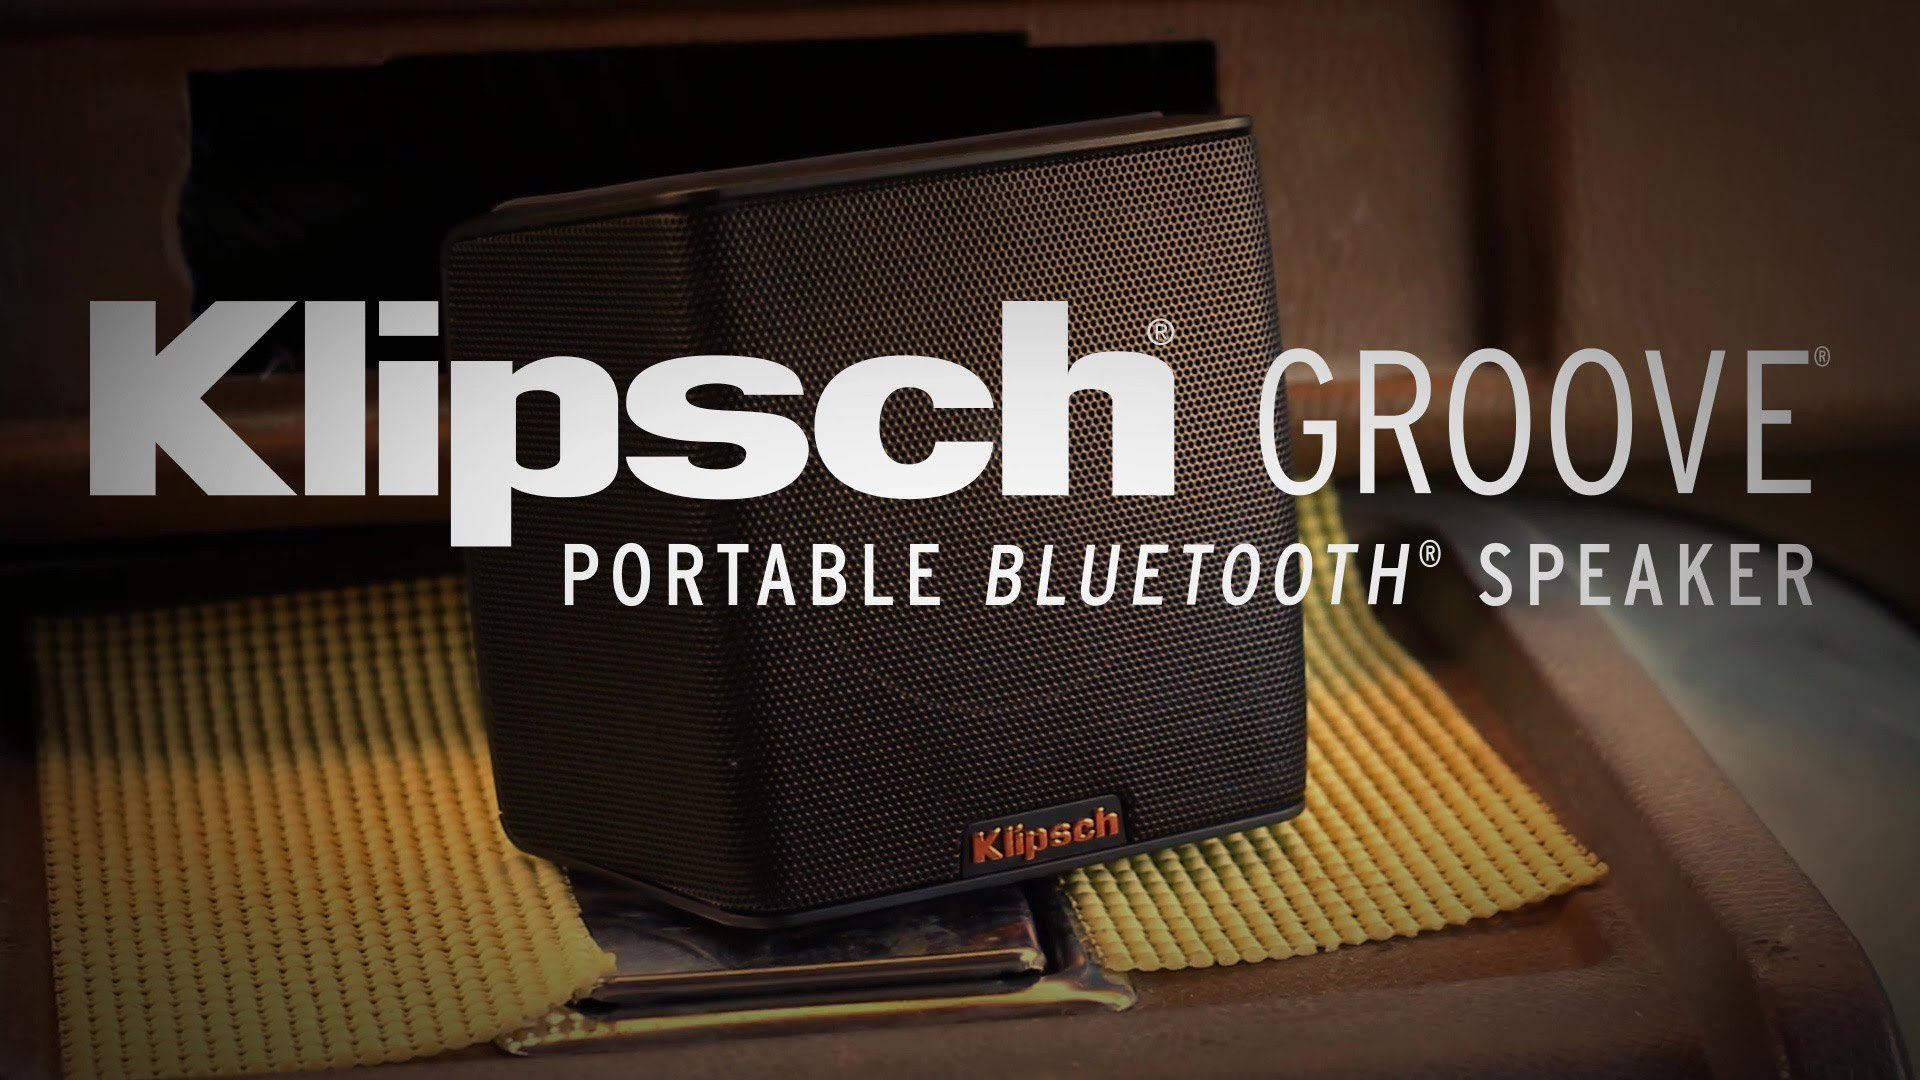 Klipsch<sup>®</sup> Groove<sup>®</sup> Portable Bluetooth<sup>®</sup> Speaker